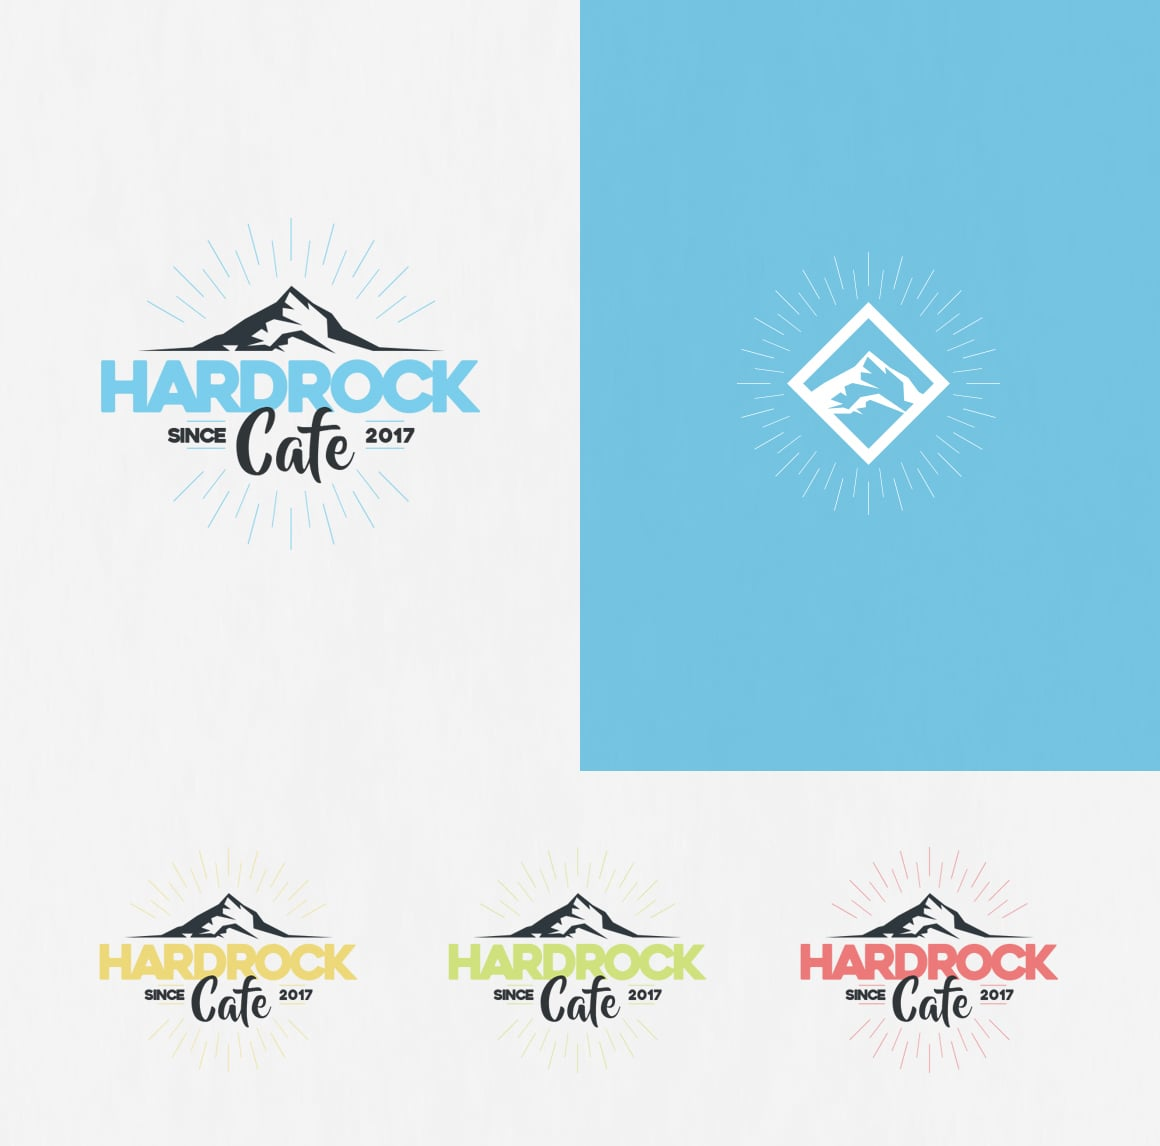 4 in 1 Logo Design Bundle - The sky is the limit - 7 1